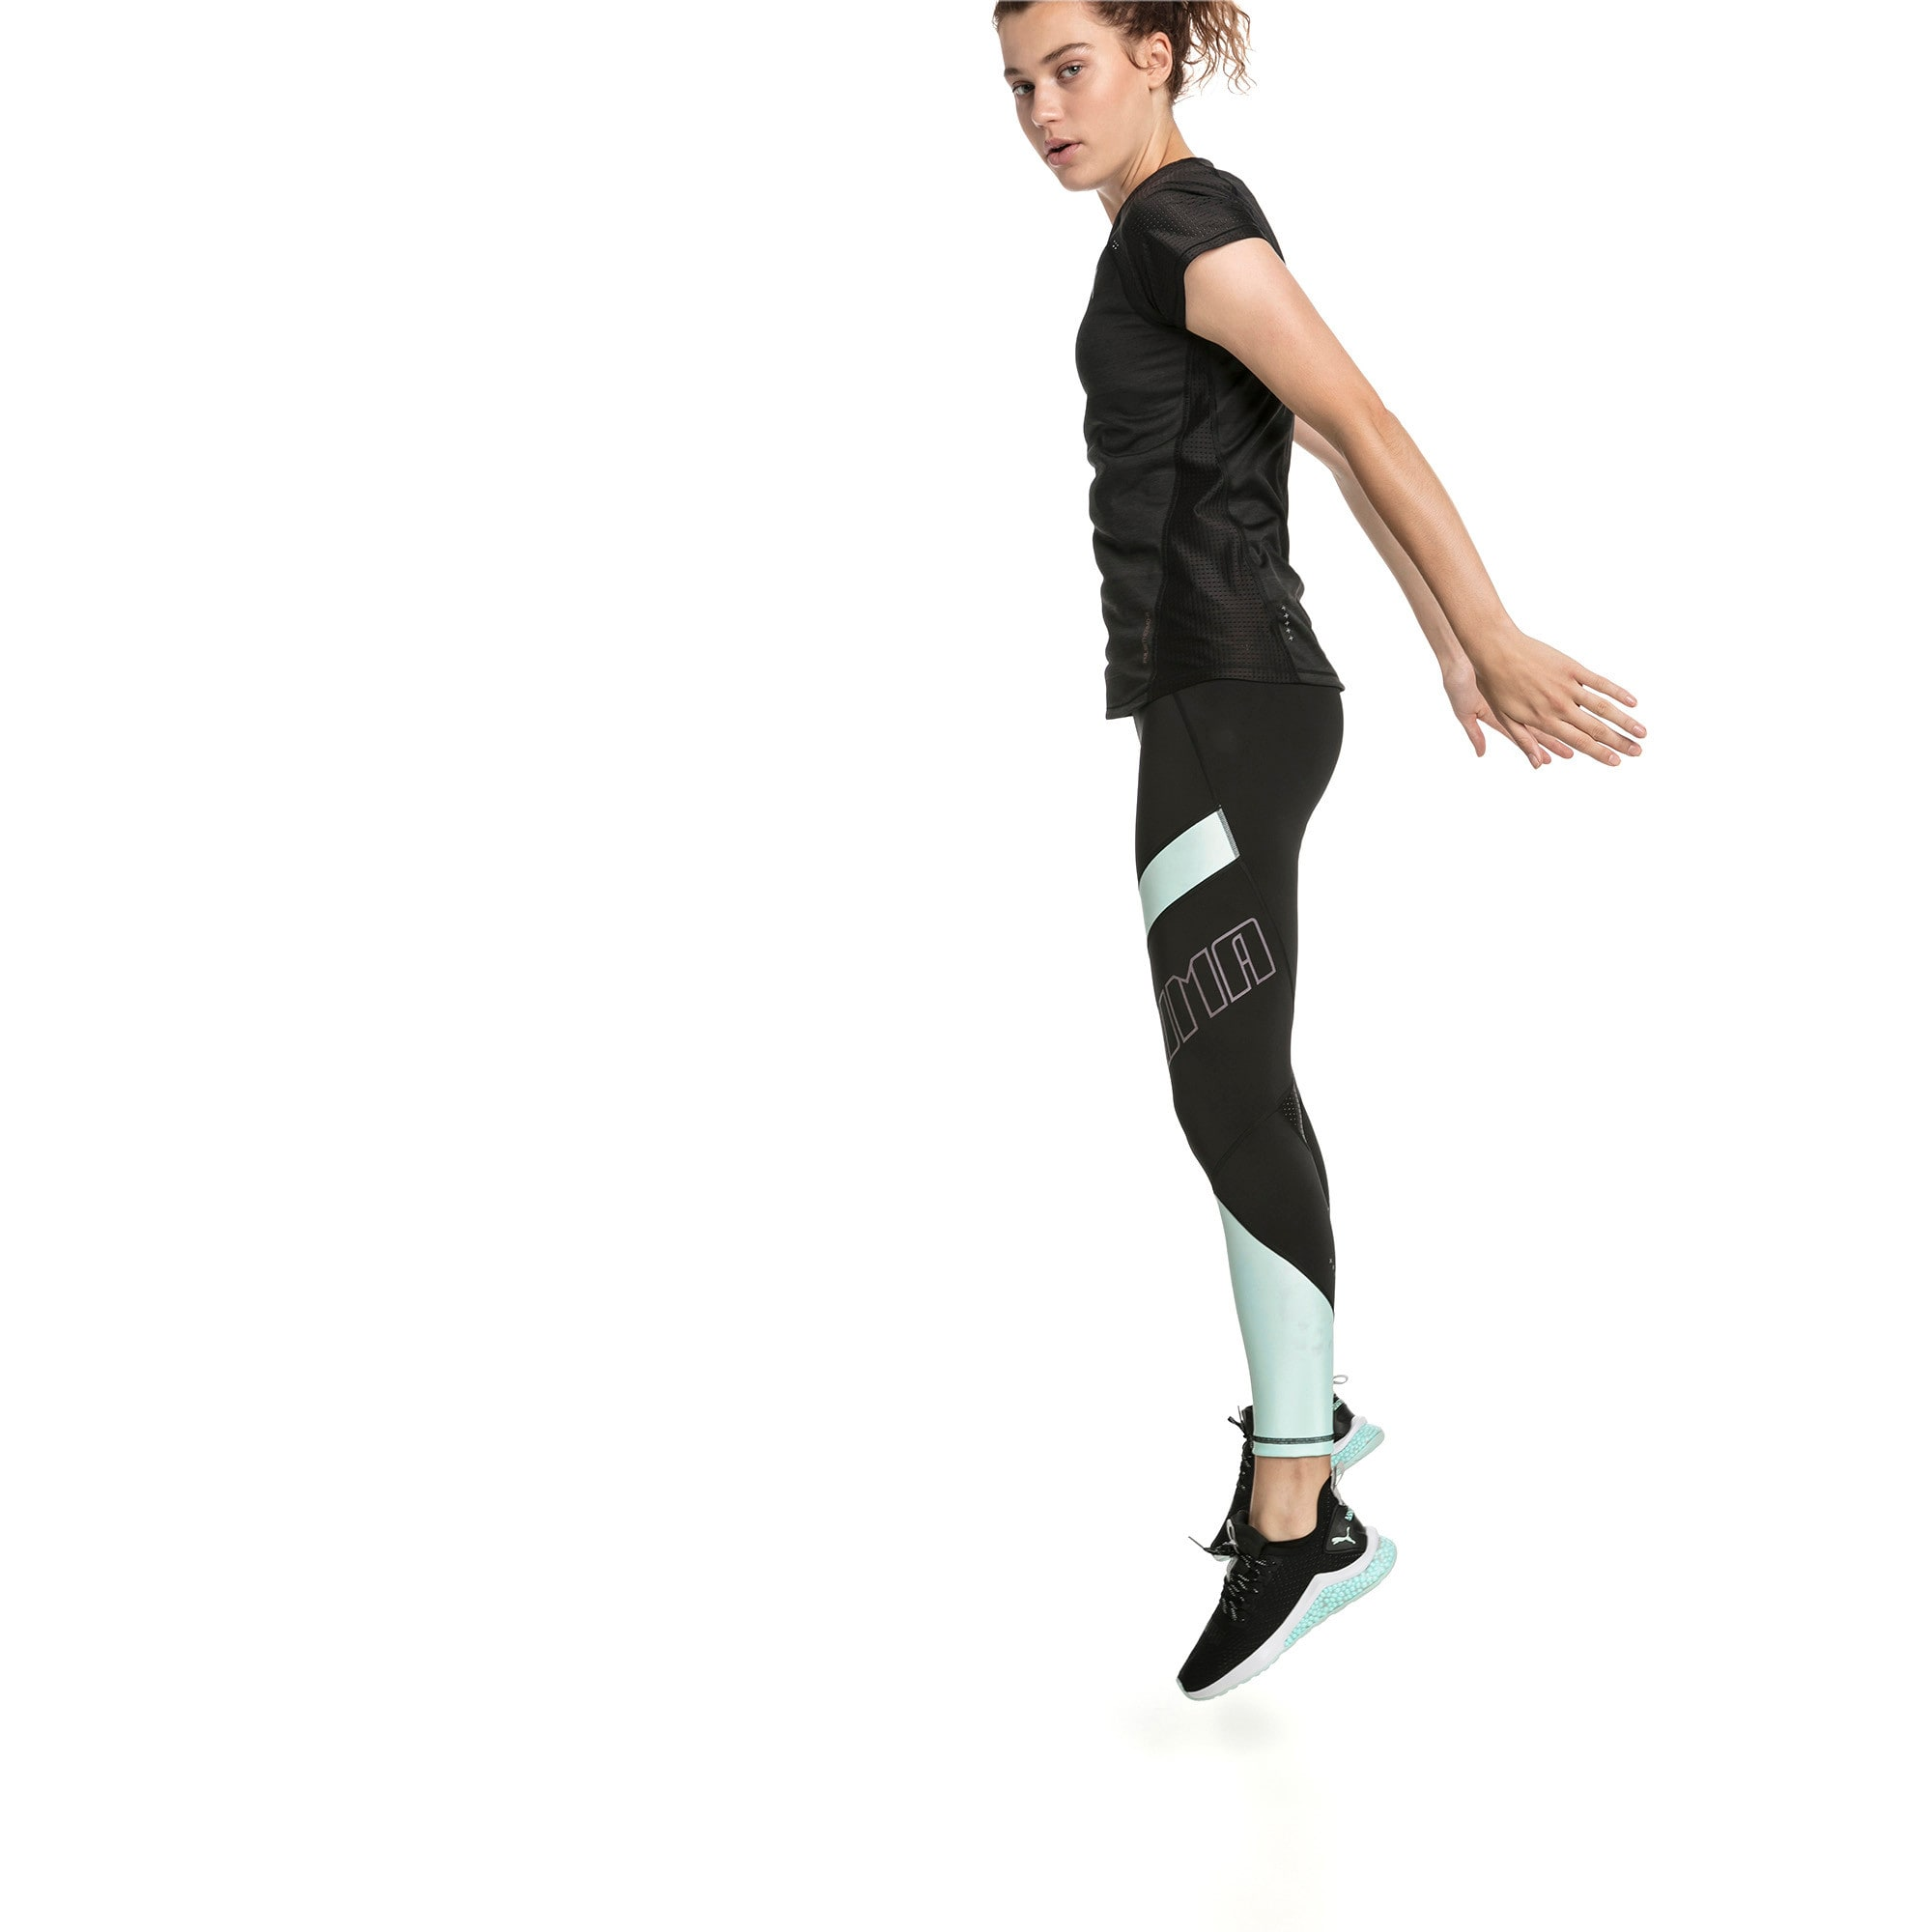 Thumbnail 3 of Elite Women's Running Leggings, Puma Black-Fair Aqua, medium-SEA